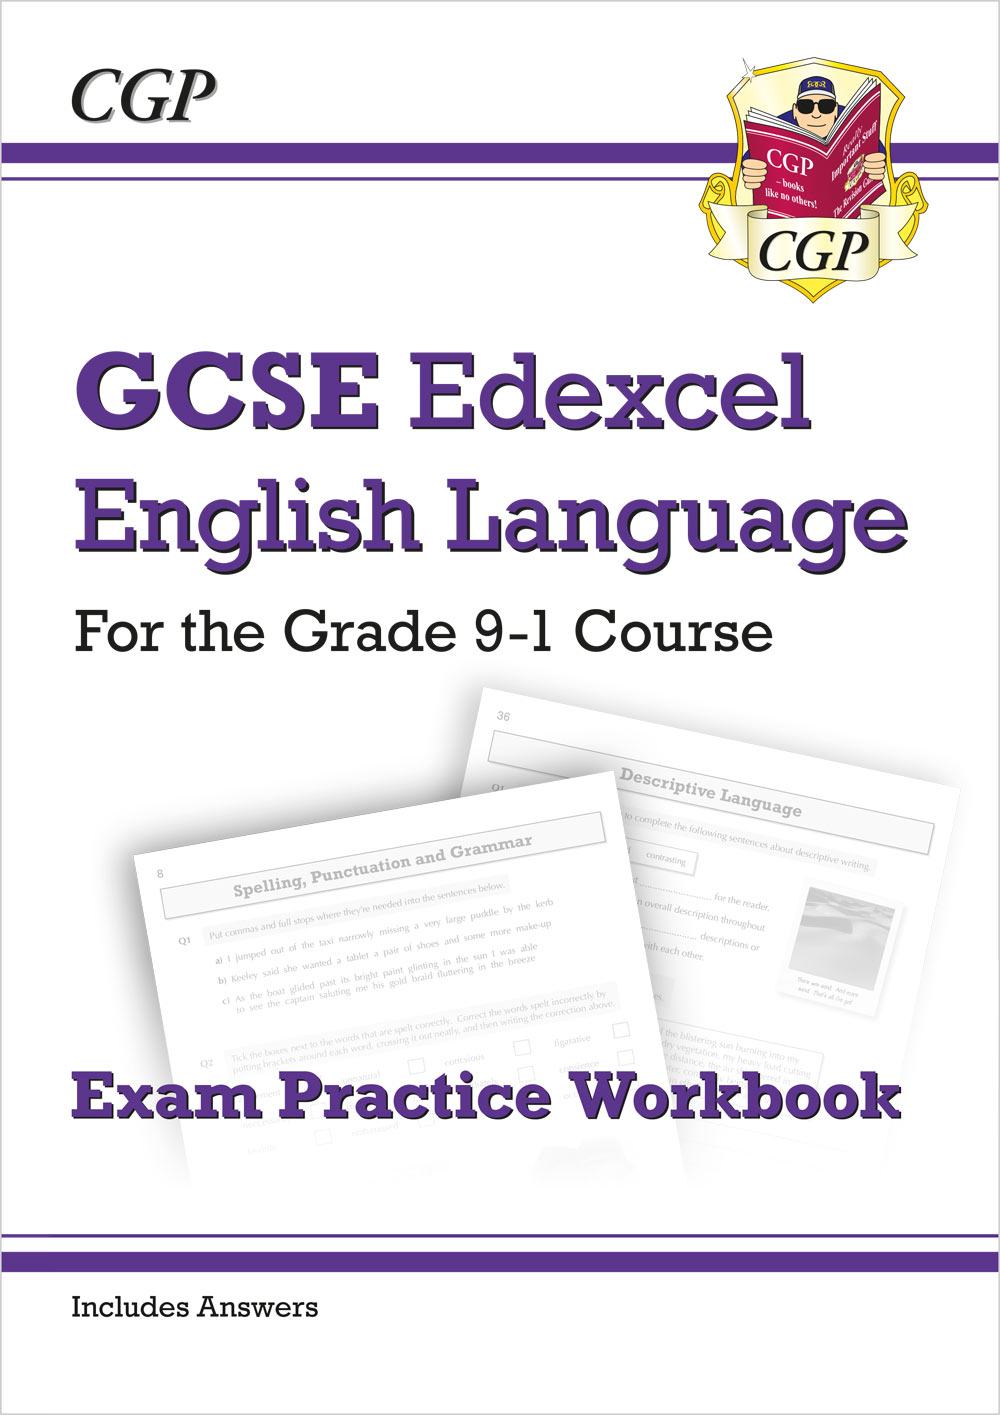 ENEW41 - GCSE English Language Edexcel Workbook - for the Grade 9-1 Course (includes Answers)